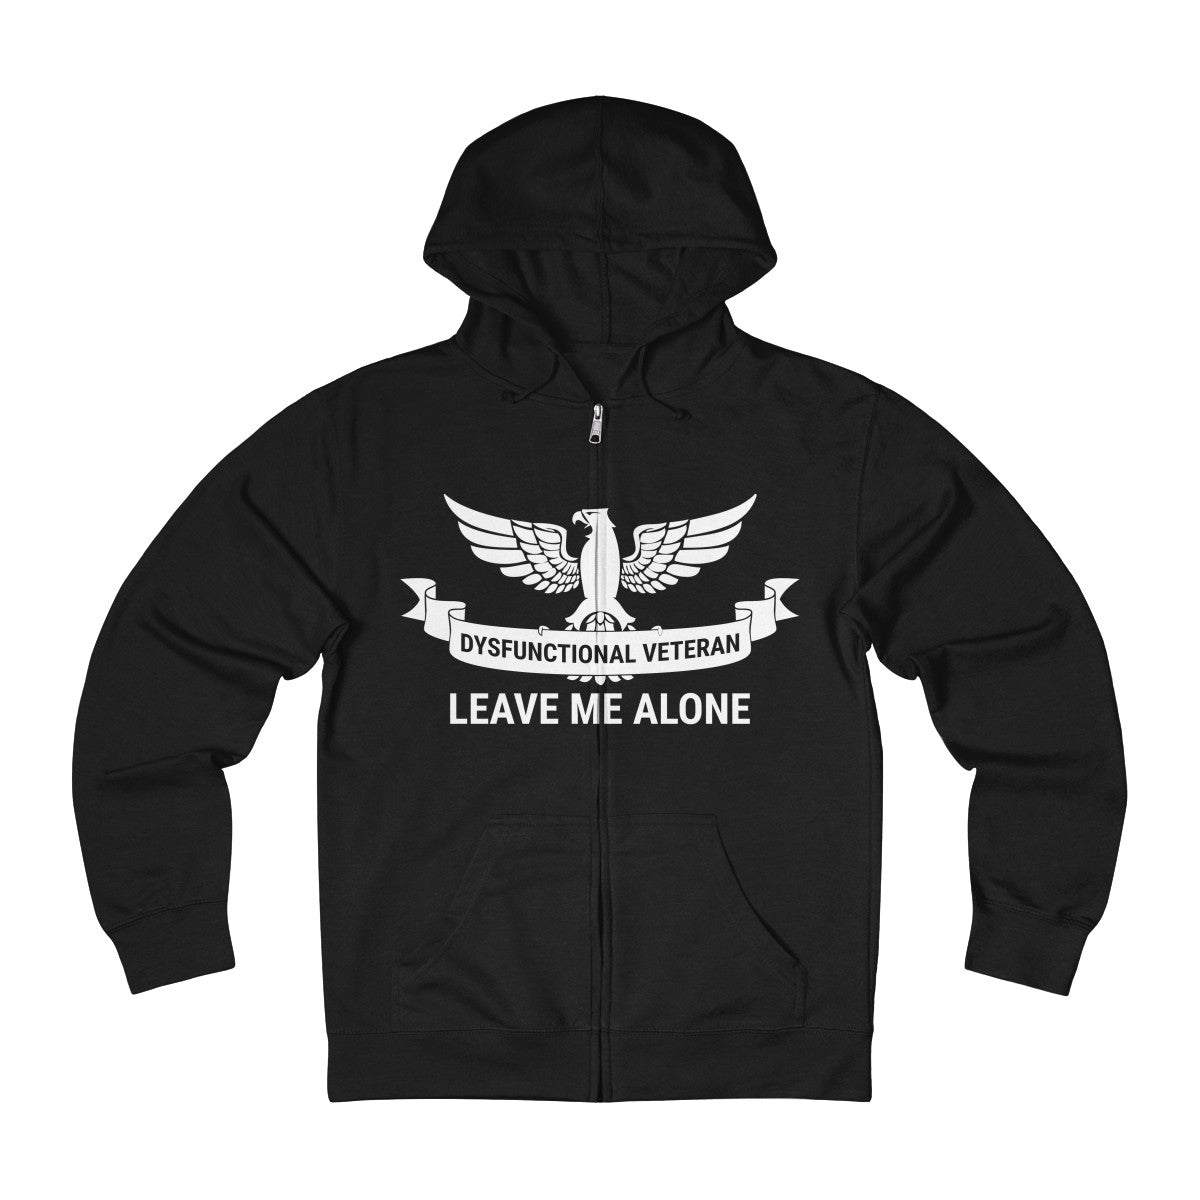 Dysfunctional Veteran - Leave Me Alone Zip Hoodie